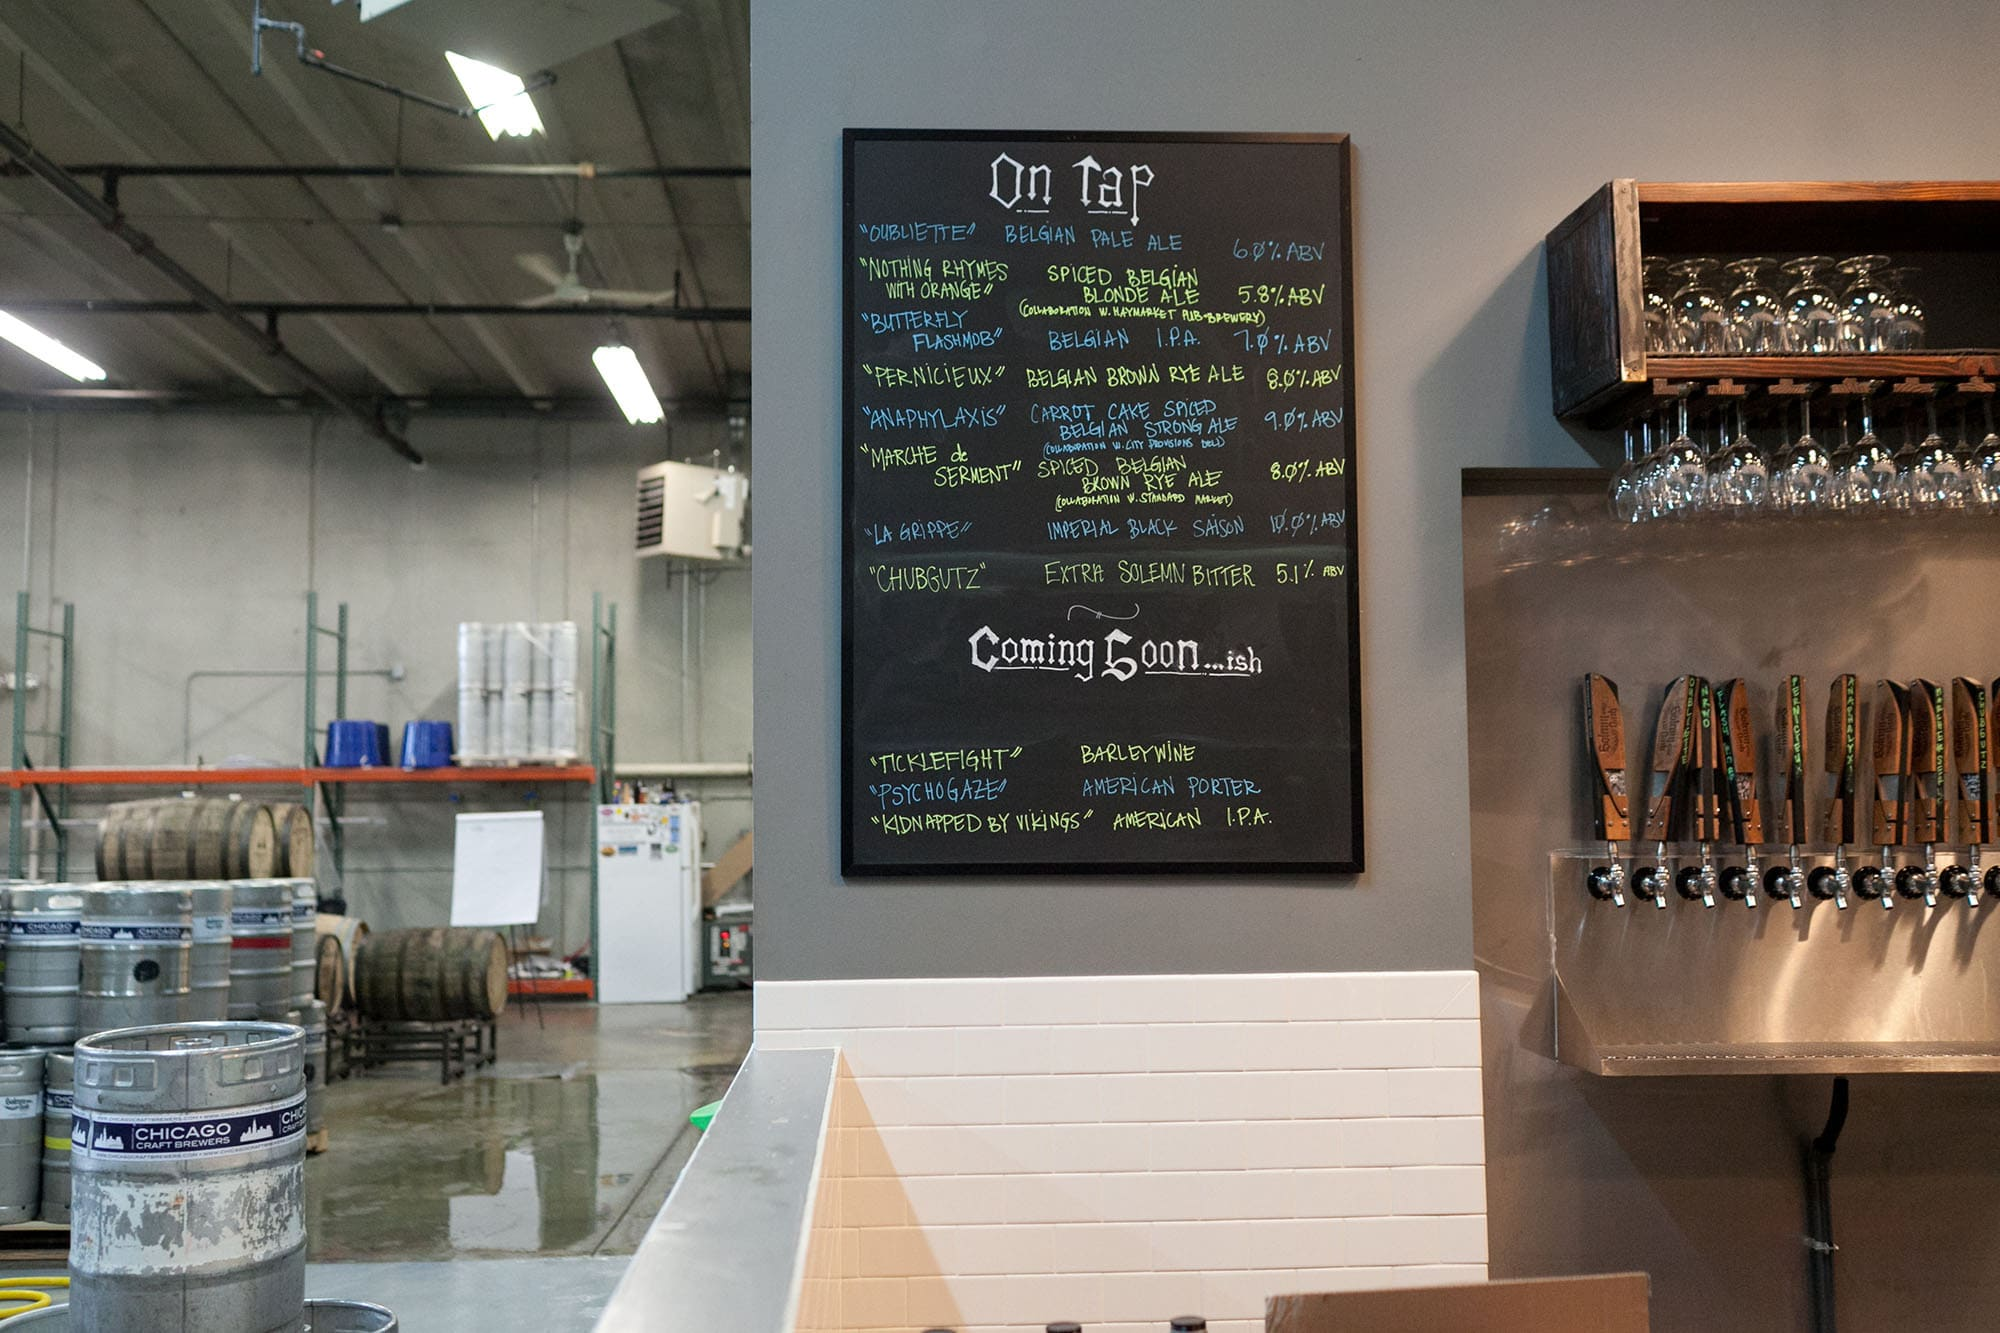 Solemn Oath Brewery in Naperville, Illinois